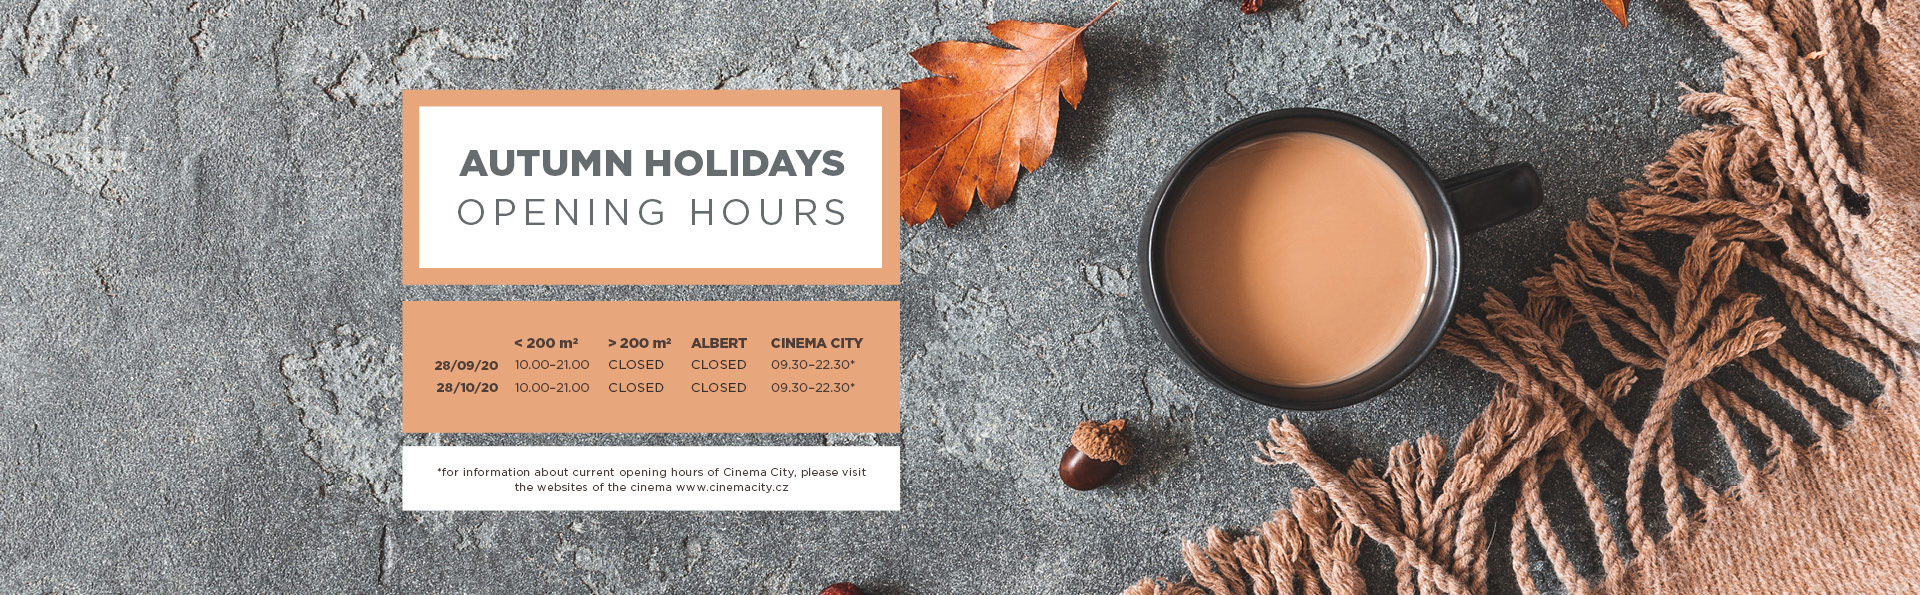 Autumn Holidays Opening Hours